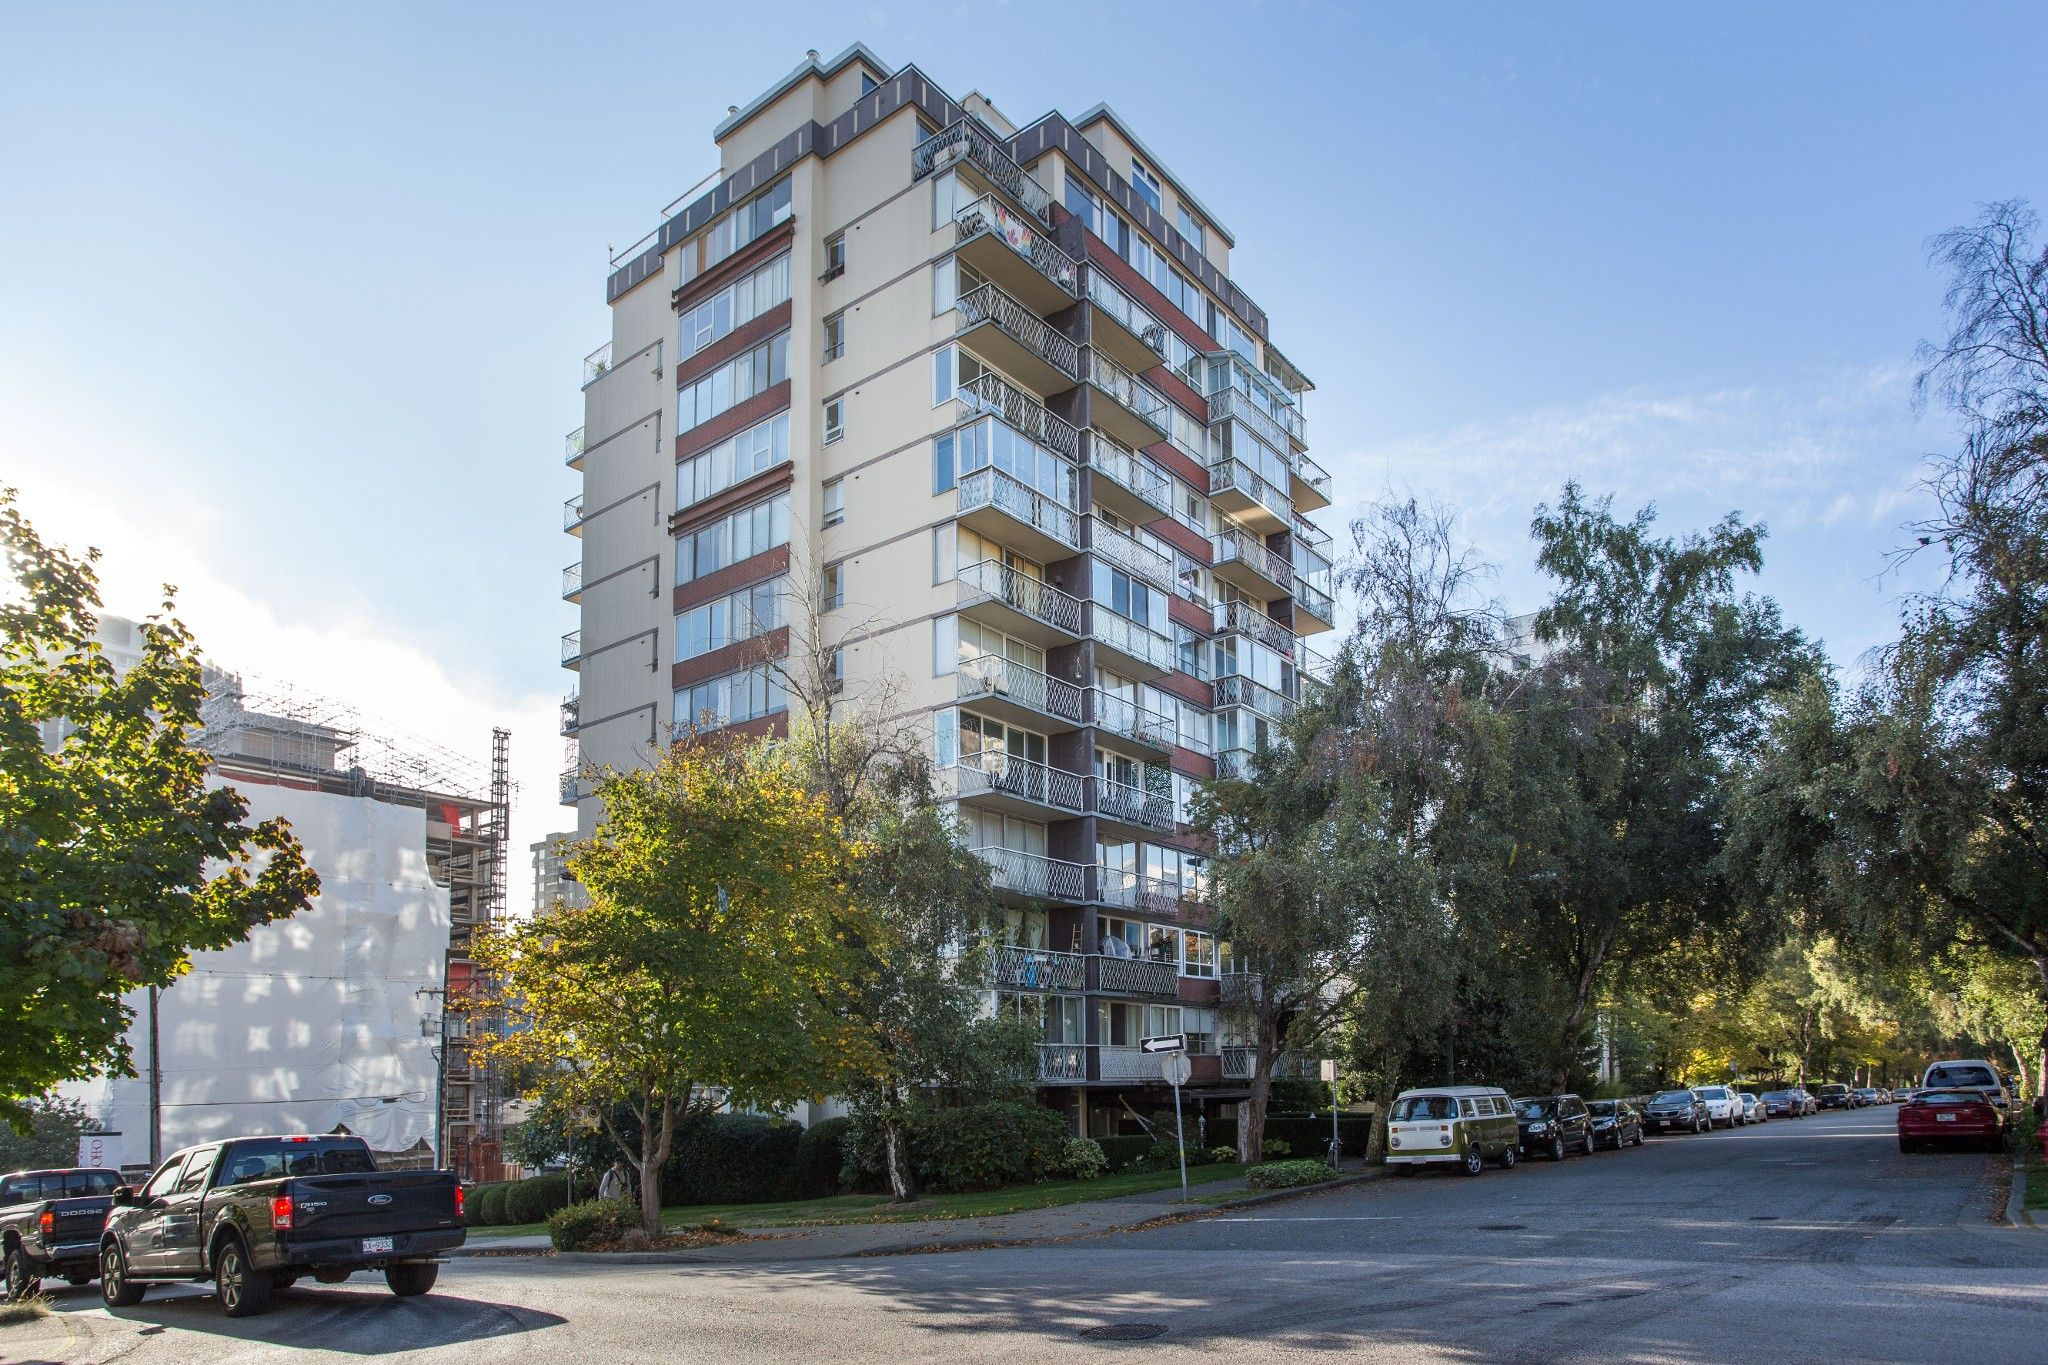 Main Photo: 404 1100 Harwood St in Vancouver: Downtown VW Condo for sale (Vancouver West)  : MLS®# R2506984